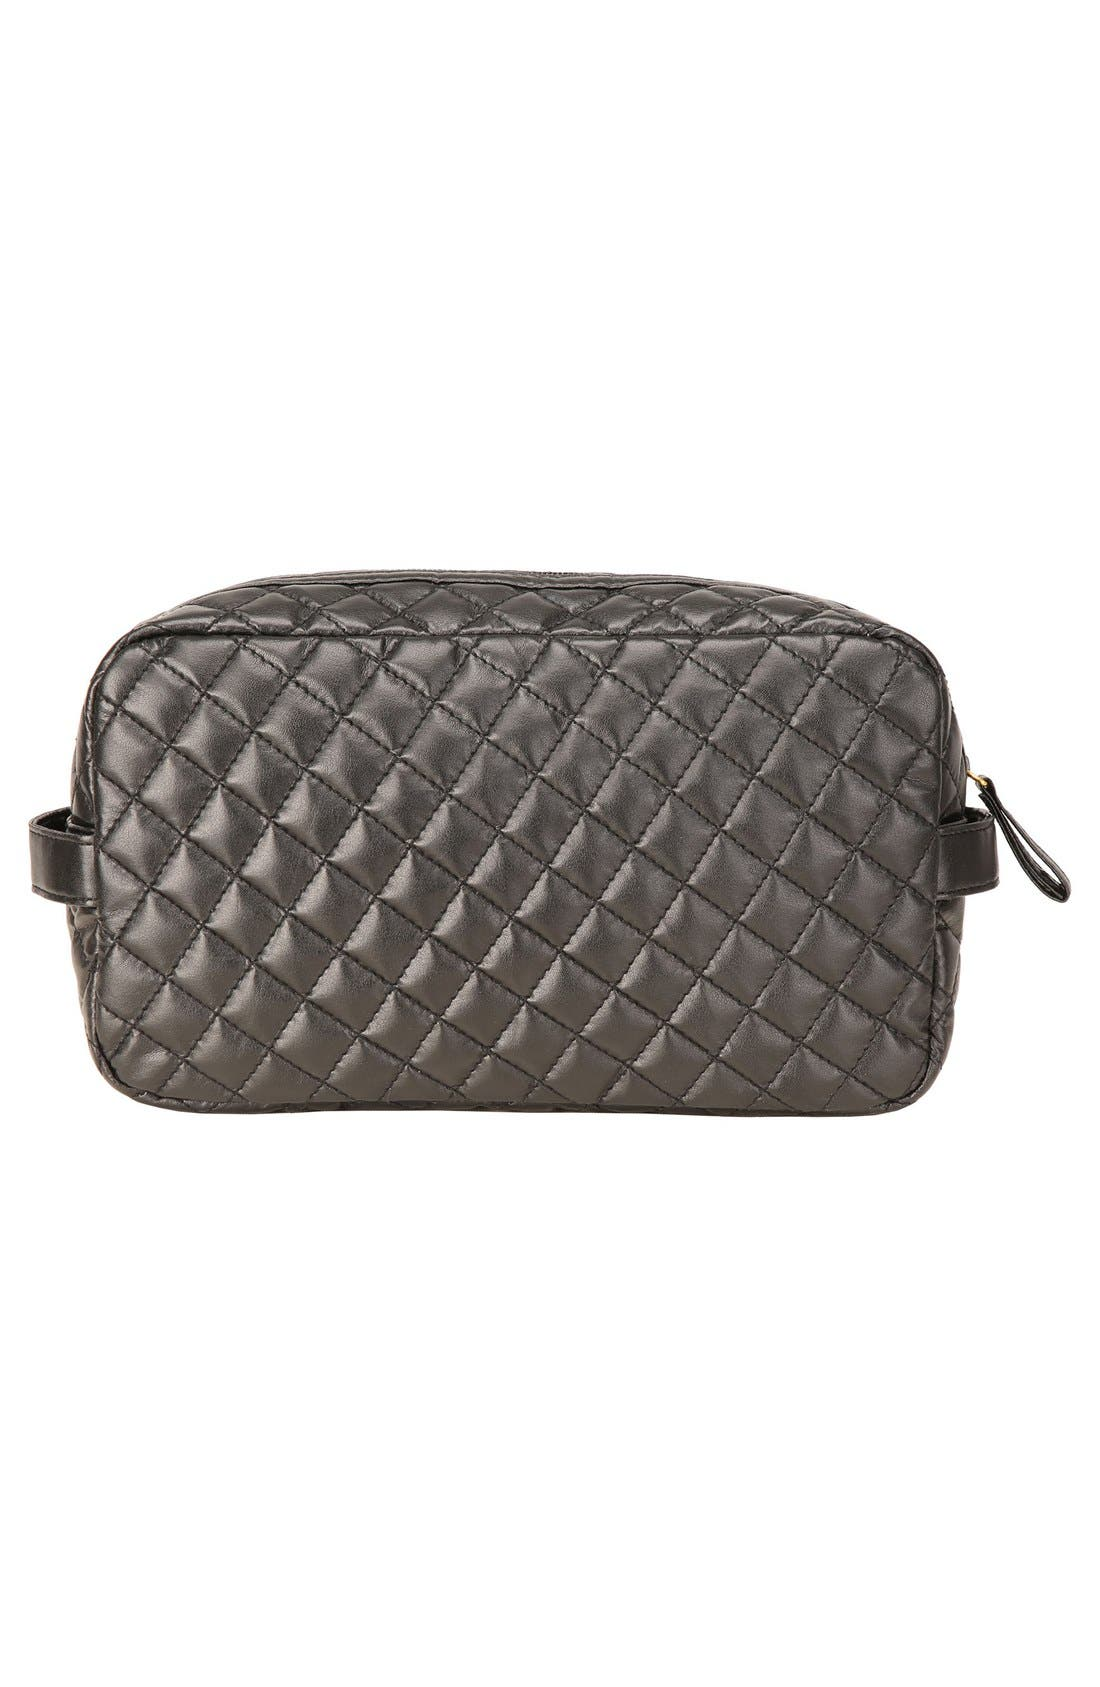 'Viveca' Quilted Black Cosmetics Case,                             Alternate thumbnail 5, color,                             000